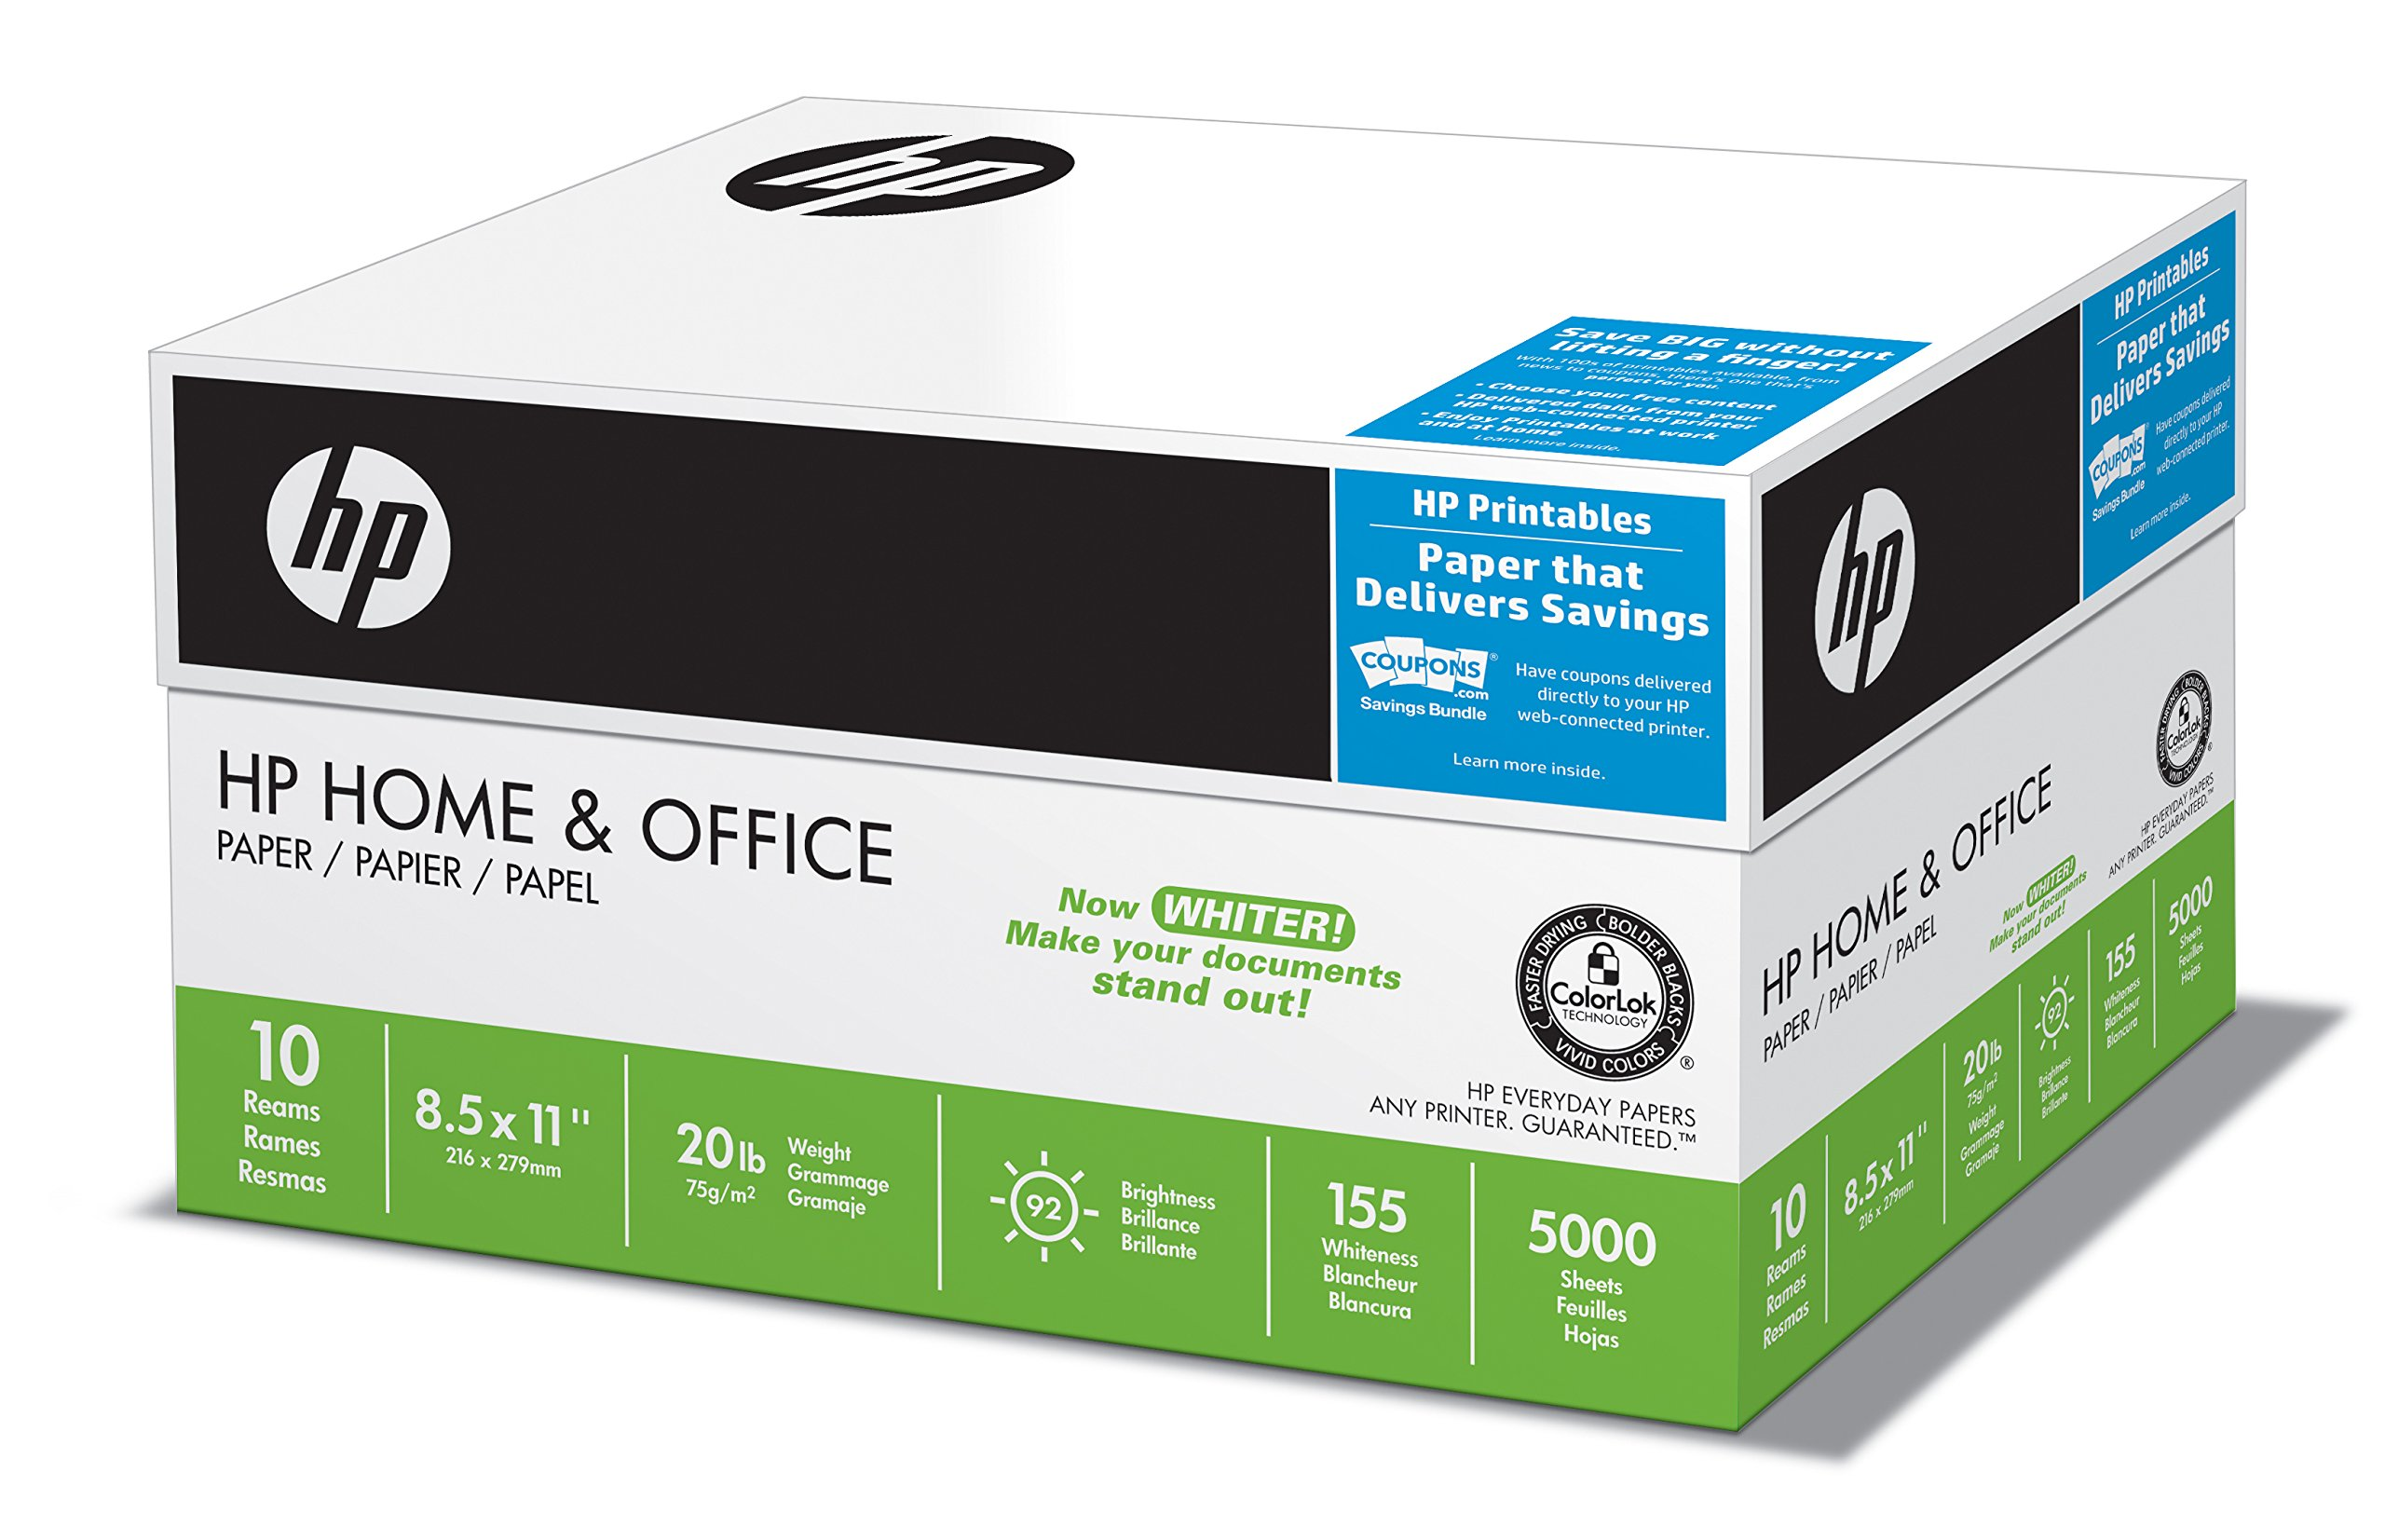 HP Printer Paper, Home & Office20, 8.5 x 11, Letter, 92 Bright, 5,000 Sheets / 10 Ream Carton (200510C) Made In The USA